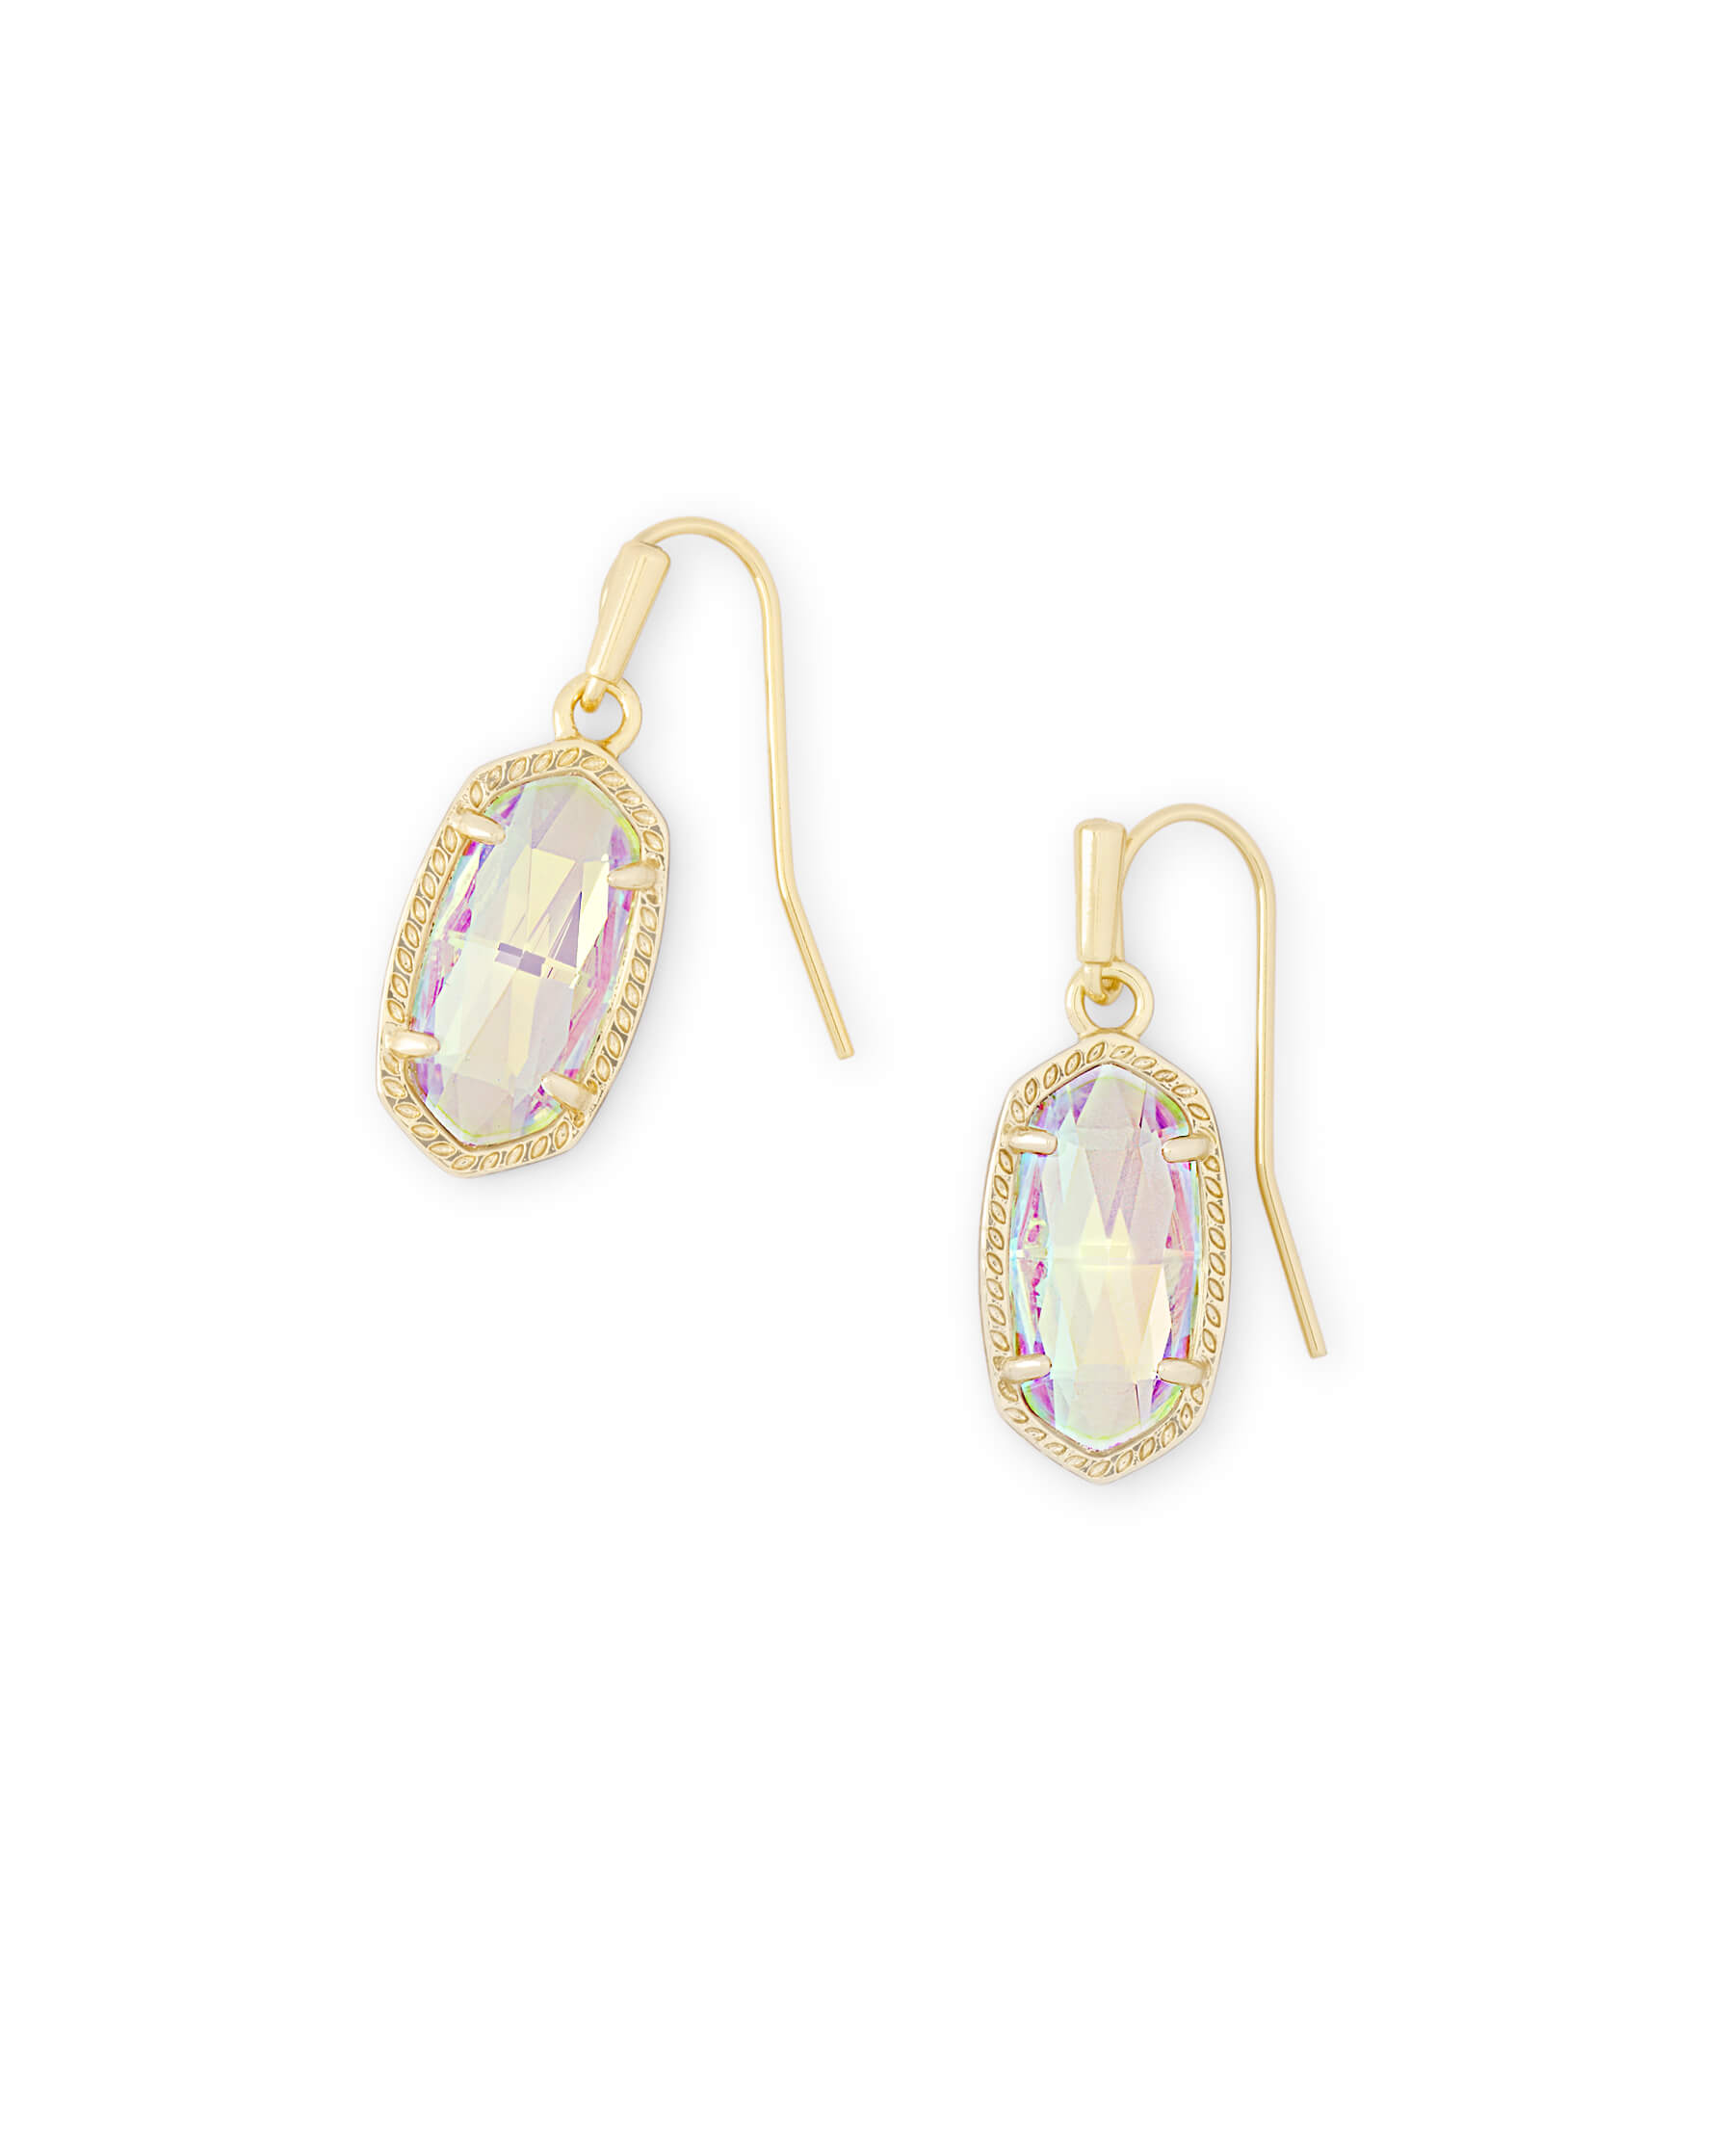 Lee Gold Drop Earrings in Dichroic Glass